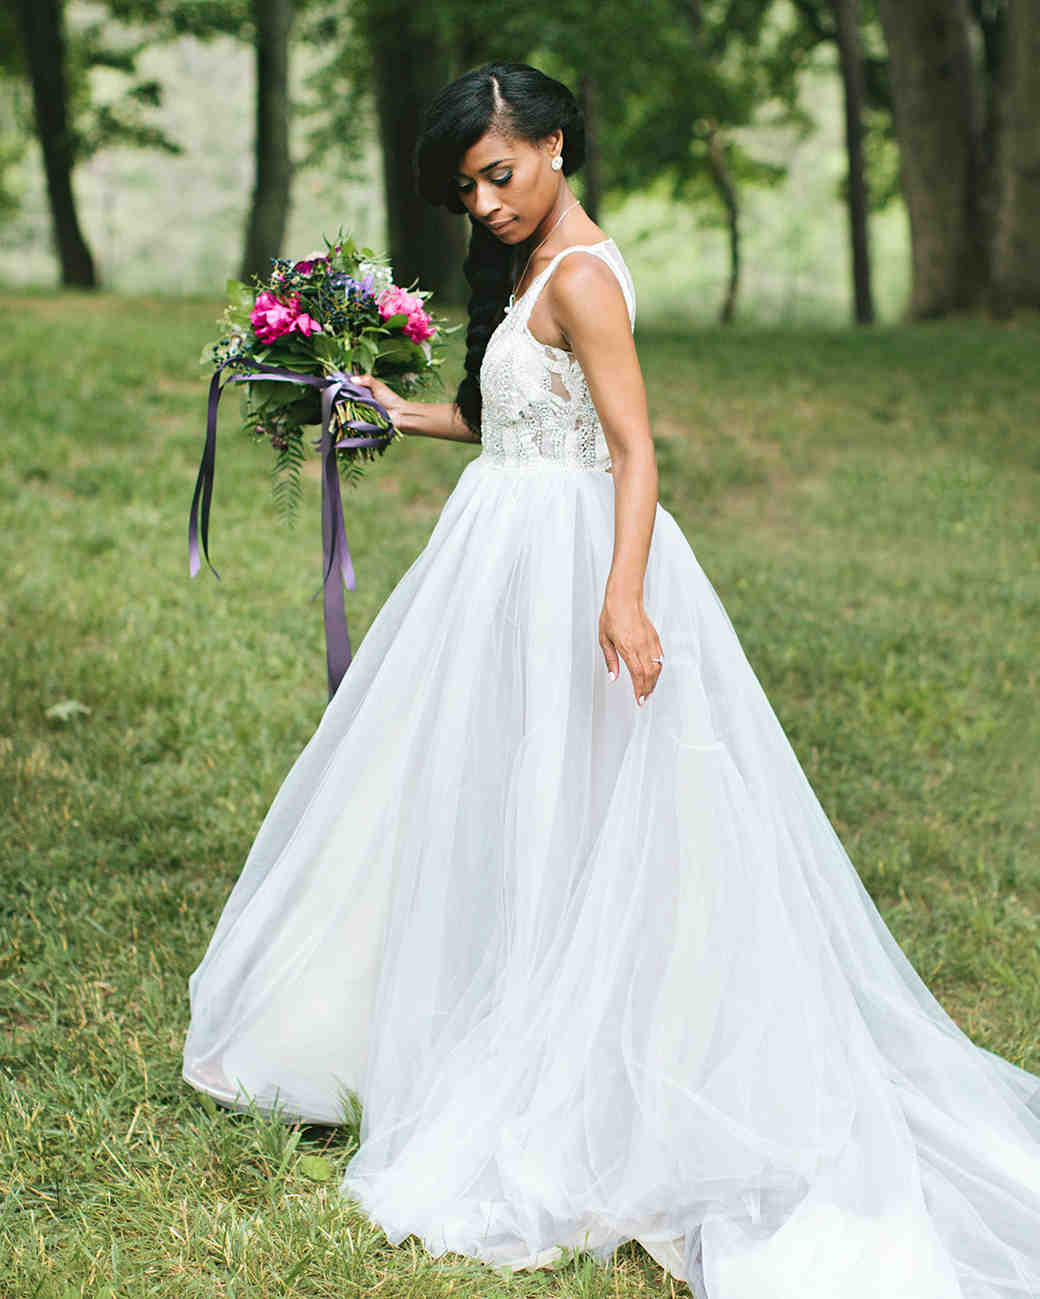 Fashion week Neck High wedding dress hair pictures for lady